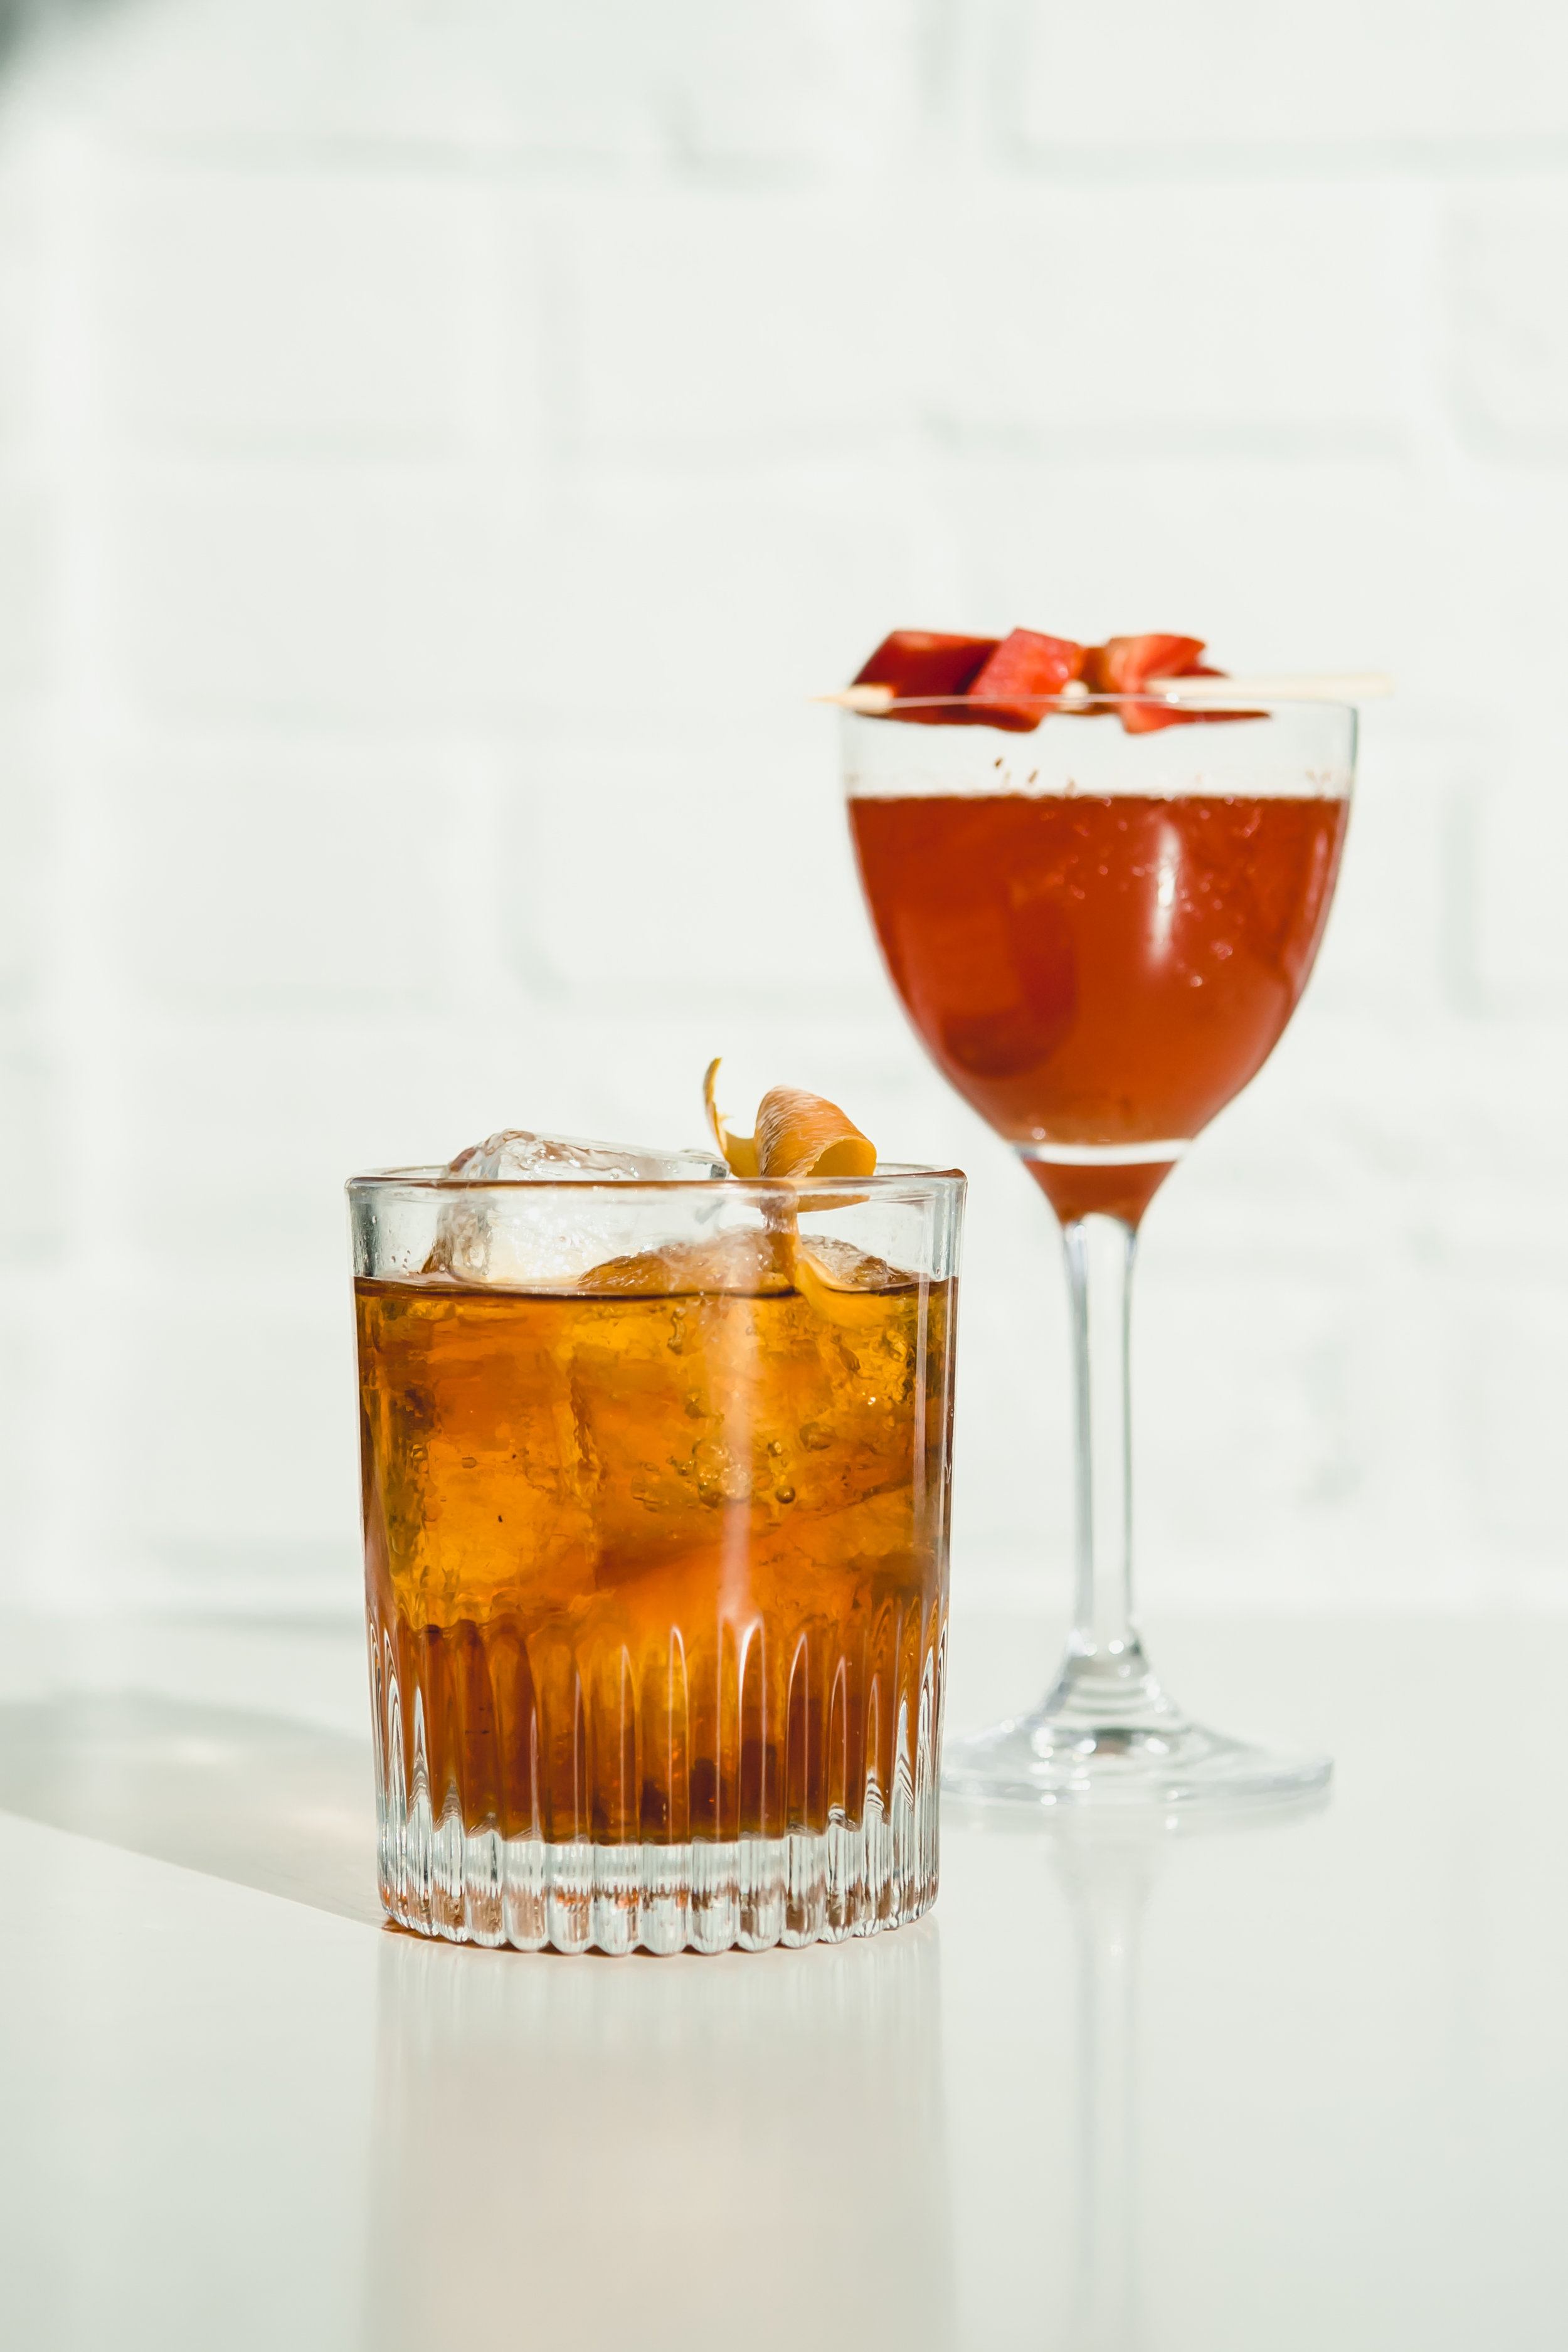 Live Free Or Thai Hard and Mandate Of Heaven from our cocktail menu